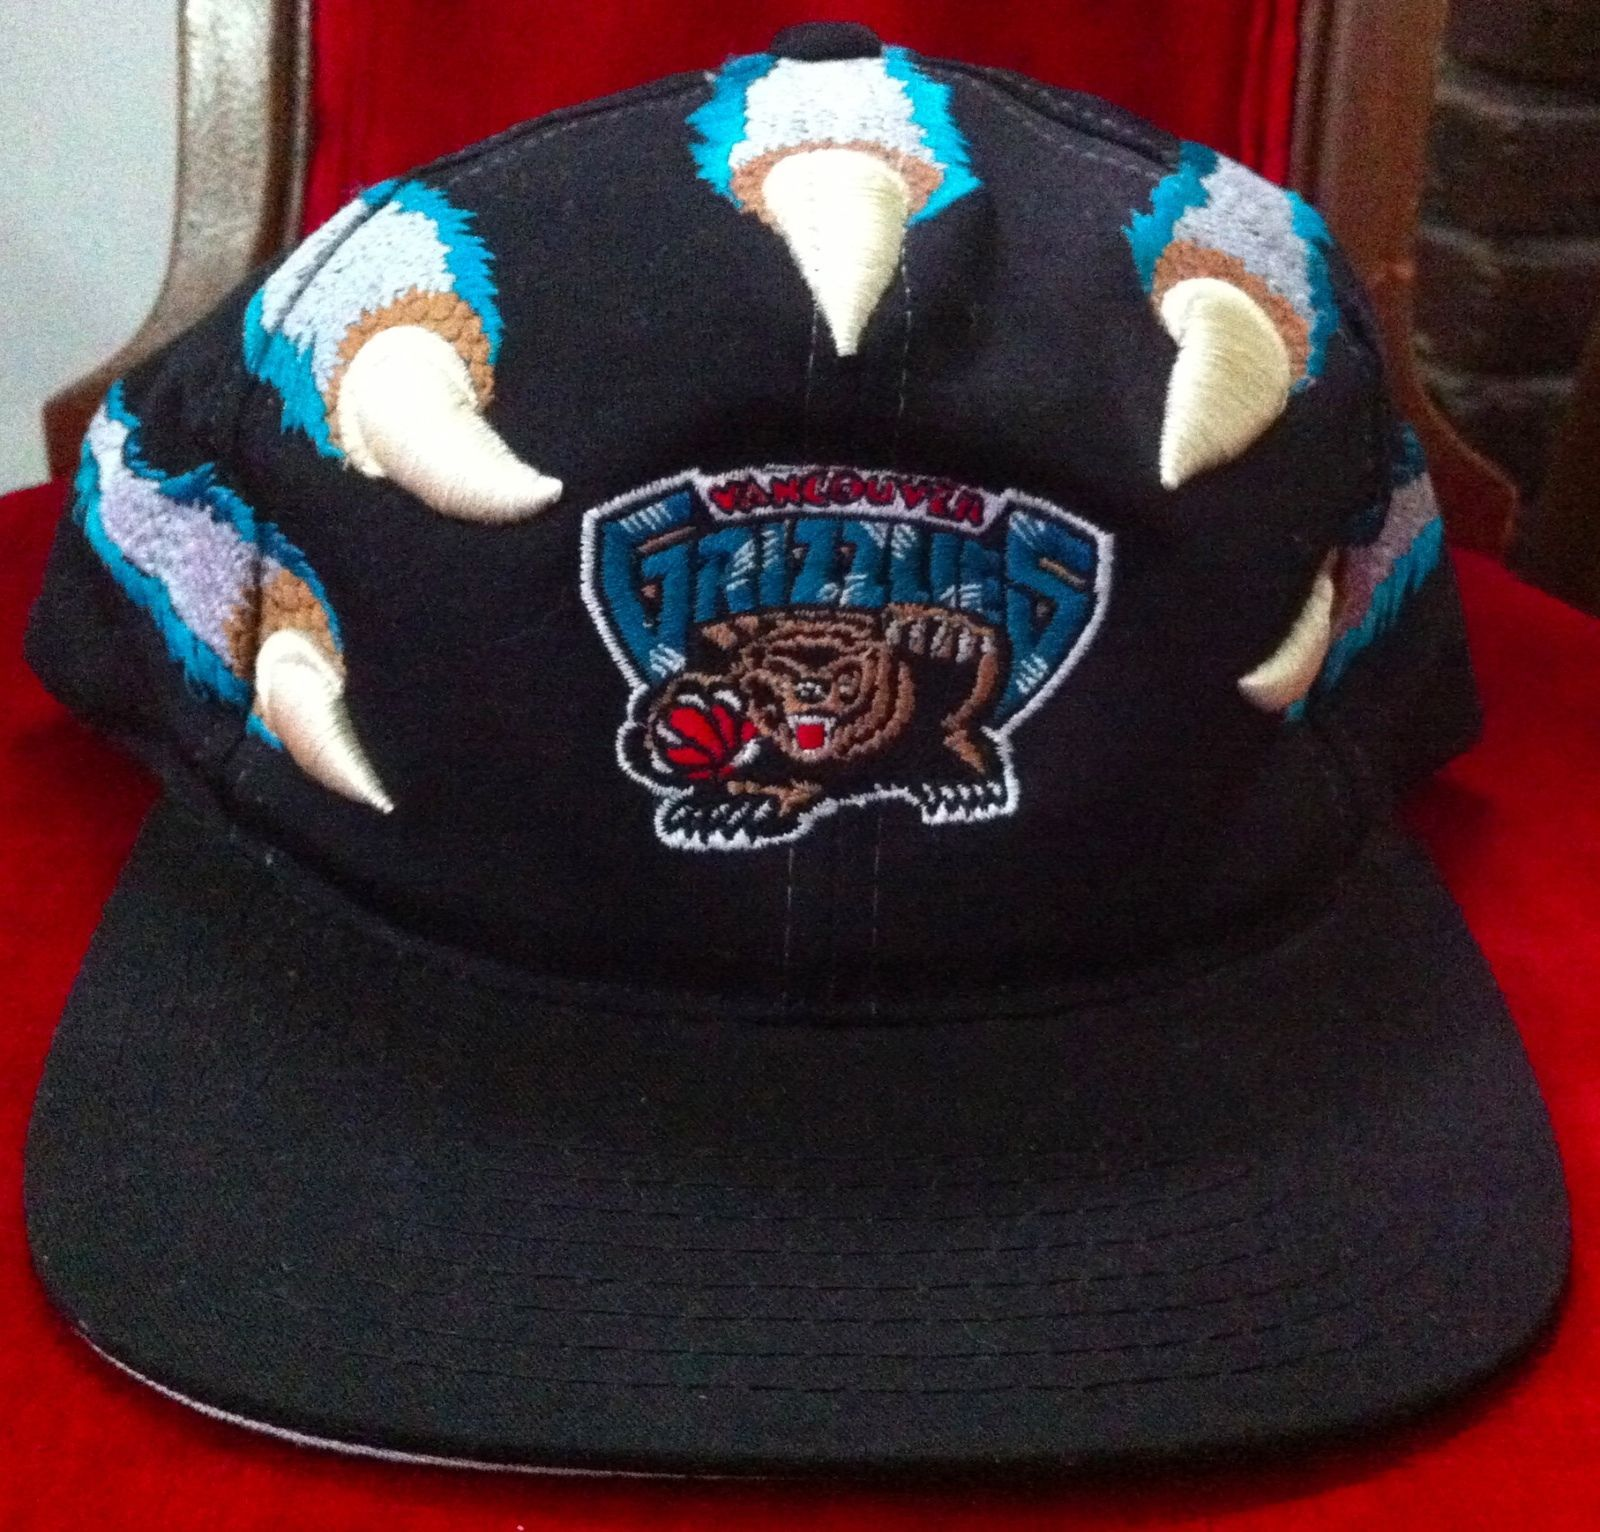 623485dd3e8e6 Vintage Starter NBA Vancouver Grizzlies Retro Snapback Cap Hat BearClaw All  Over